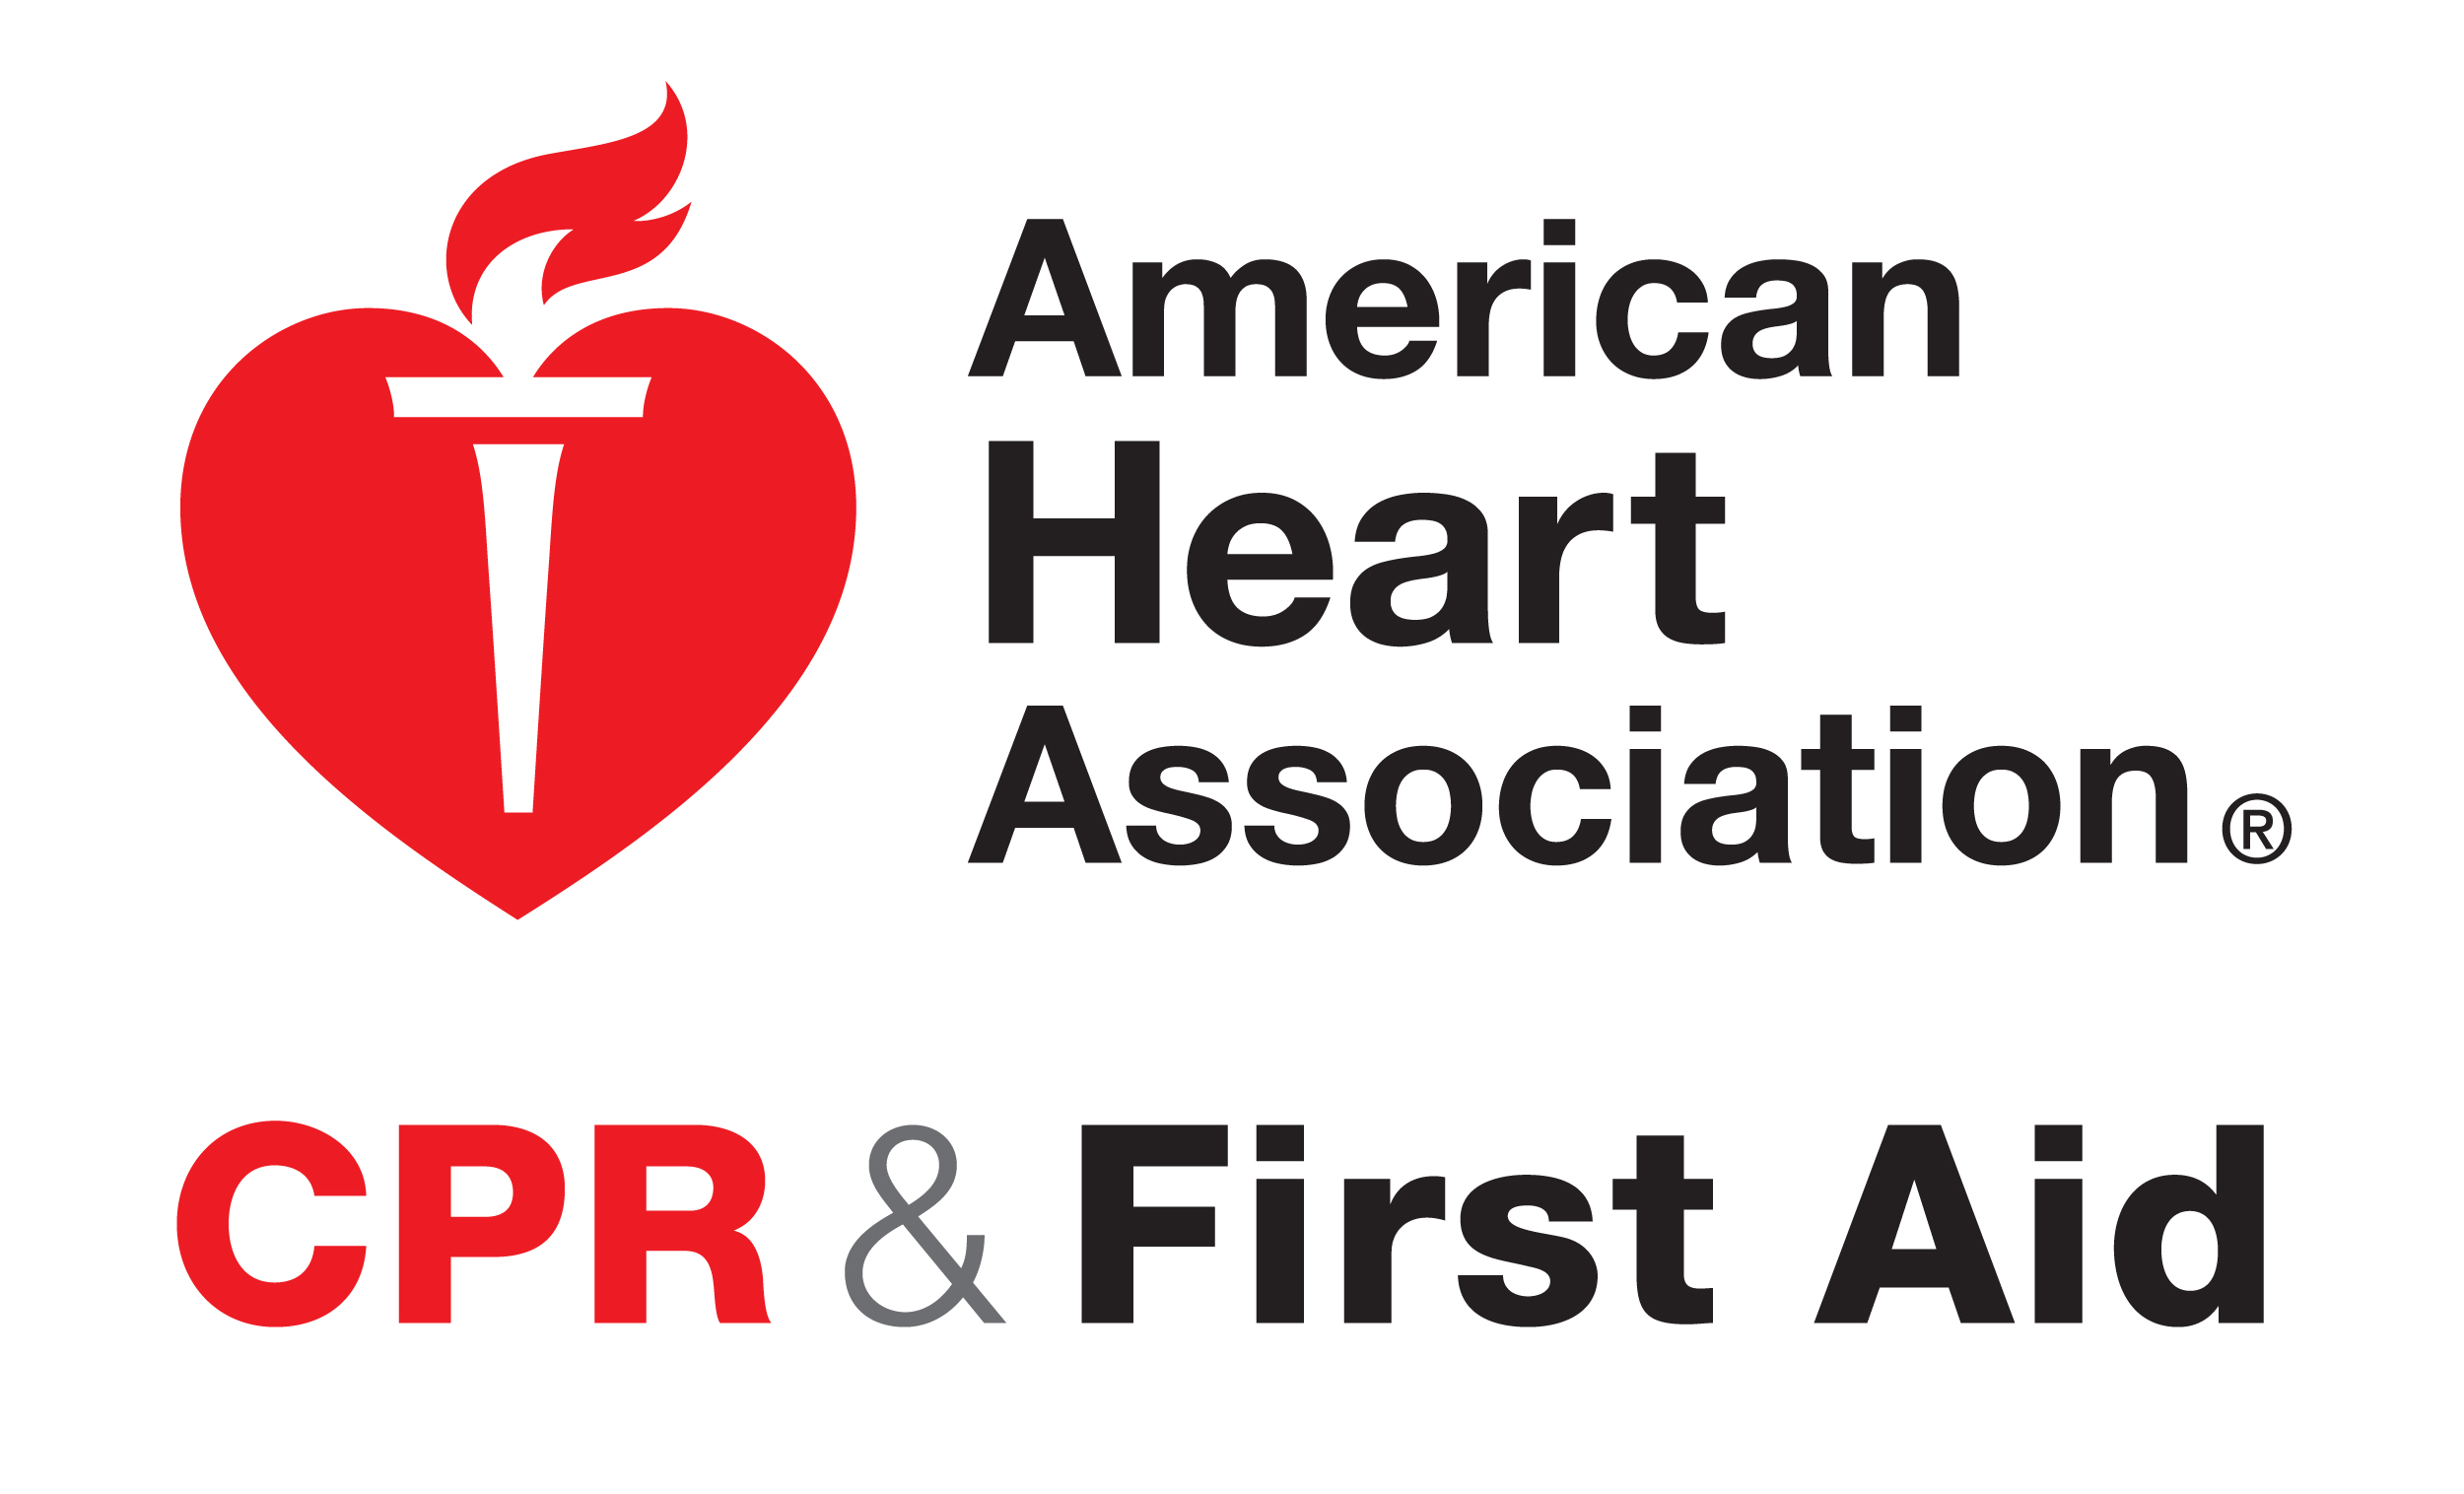 Ems Education Solutions Llc Private Event Cpr First Aid